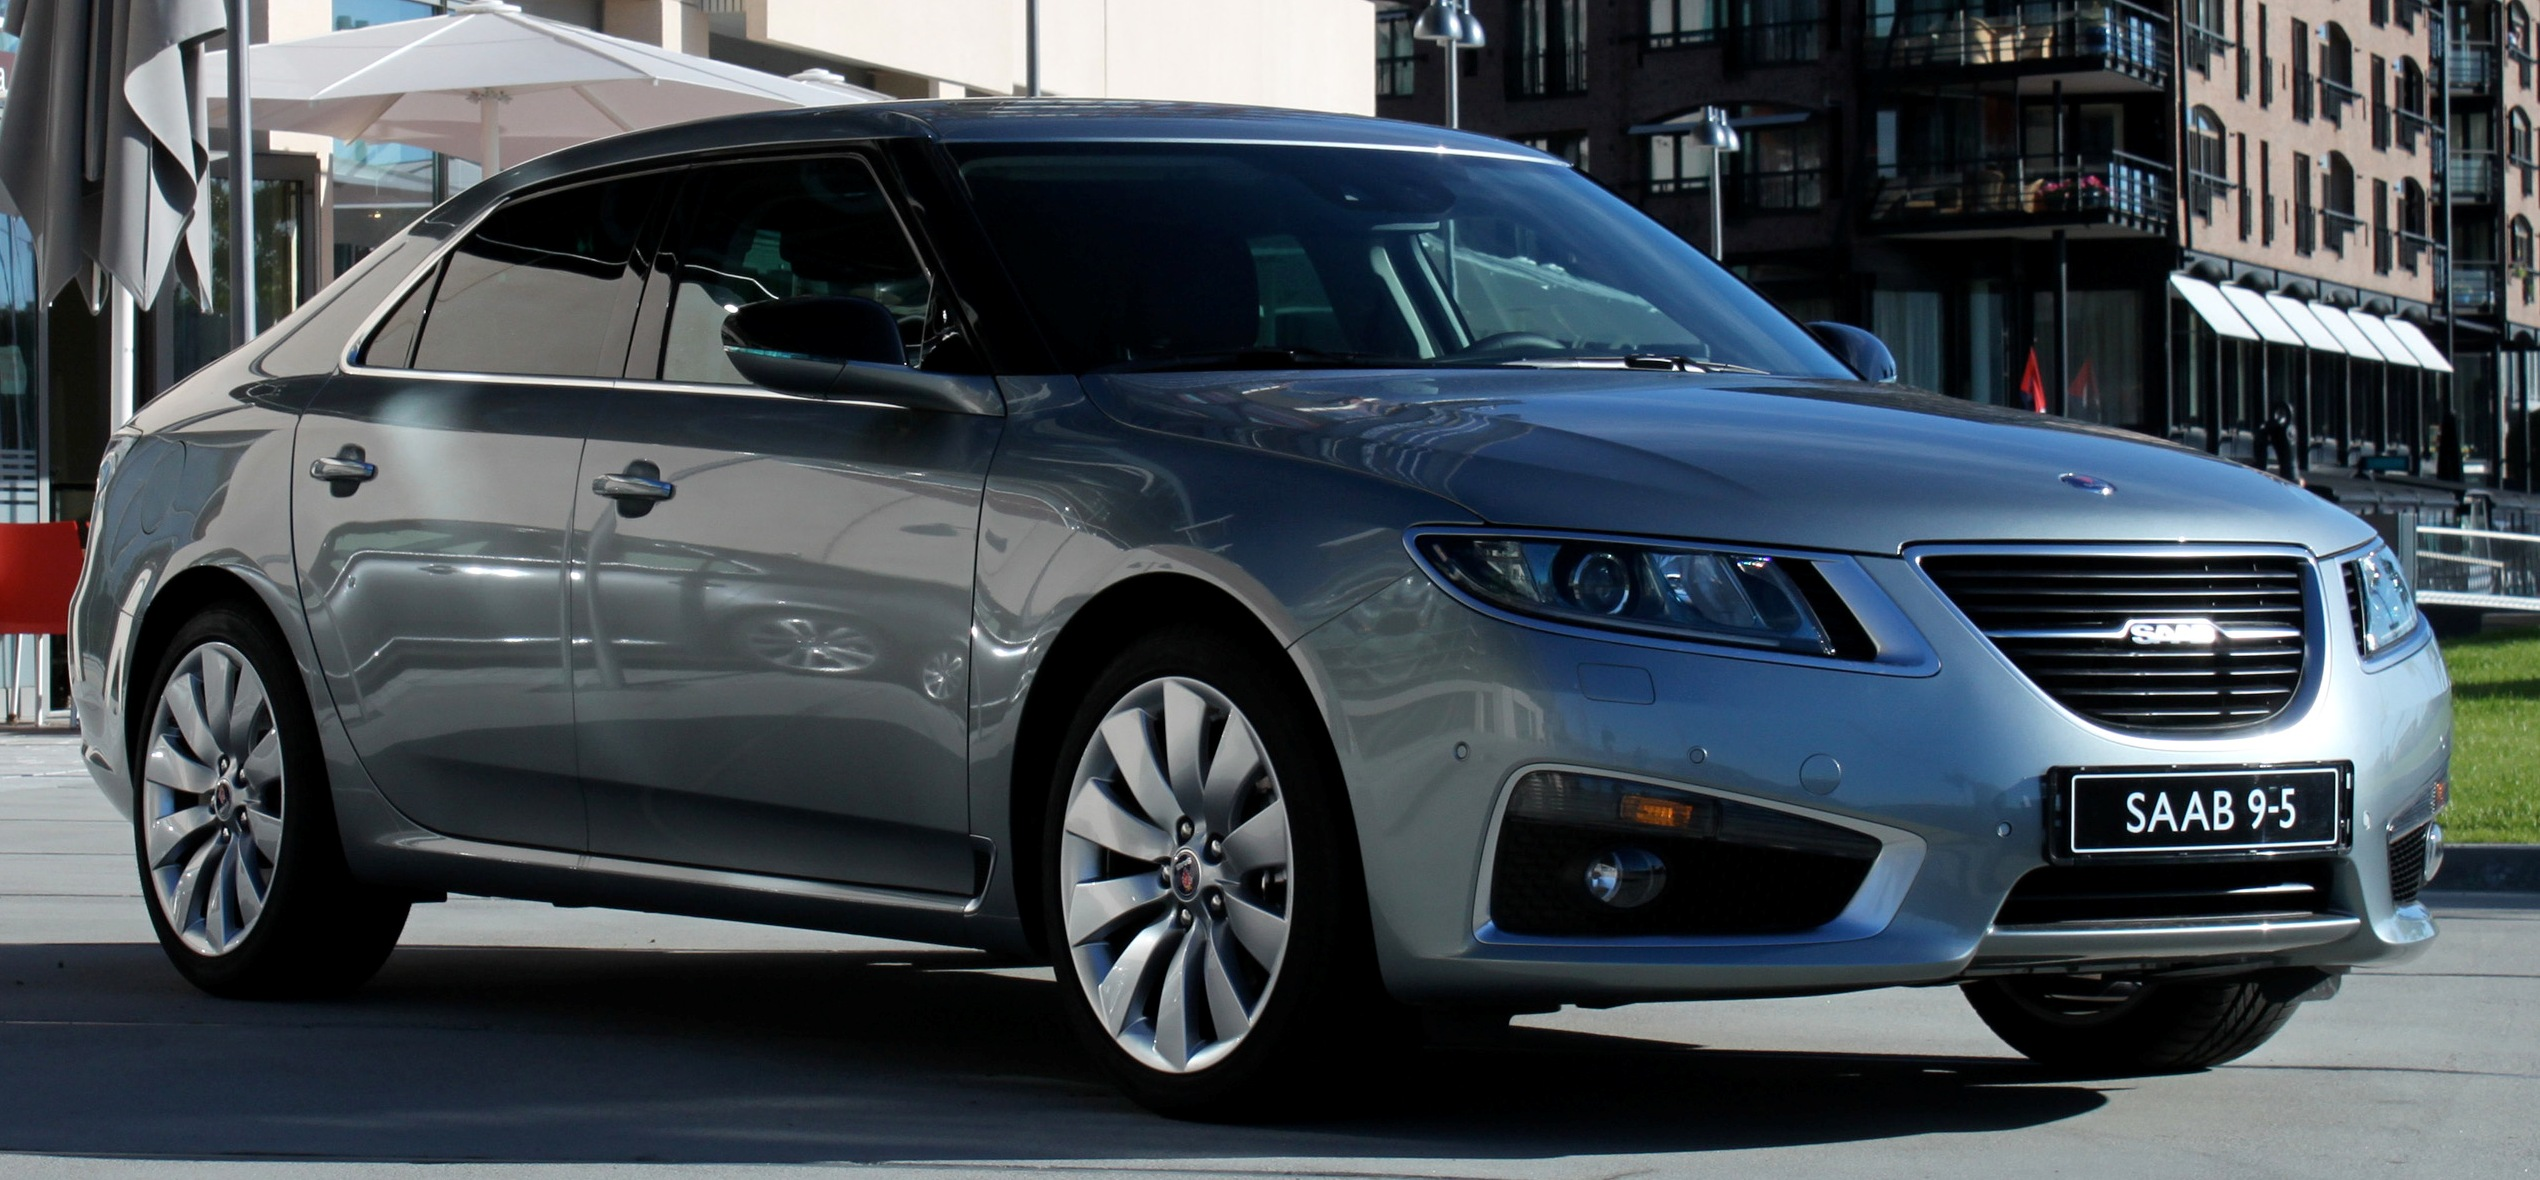 Pictures of saab 9-5 #6